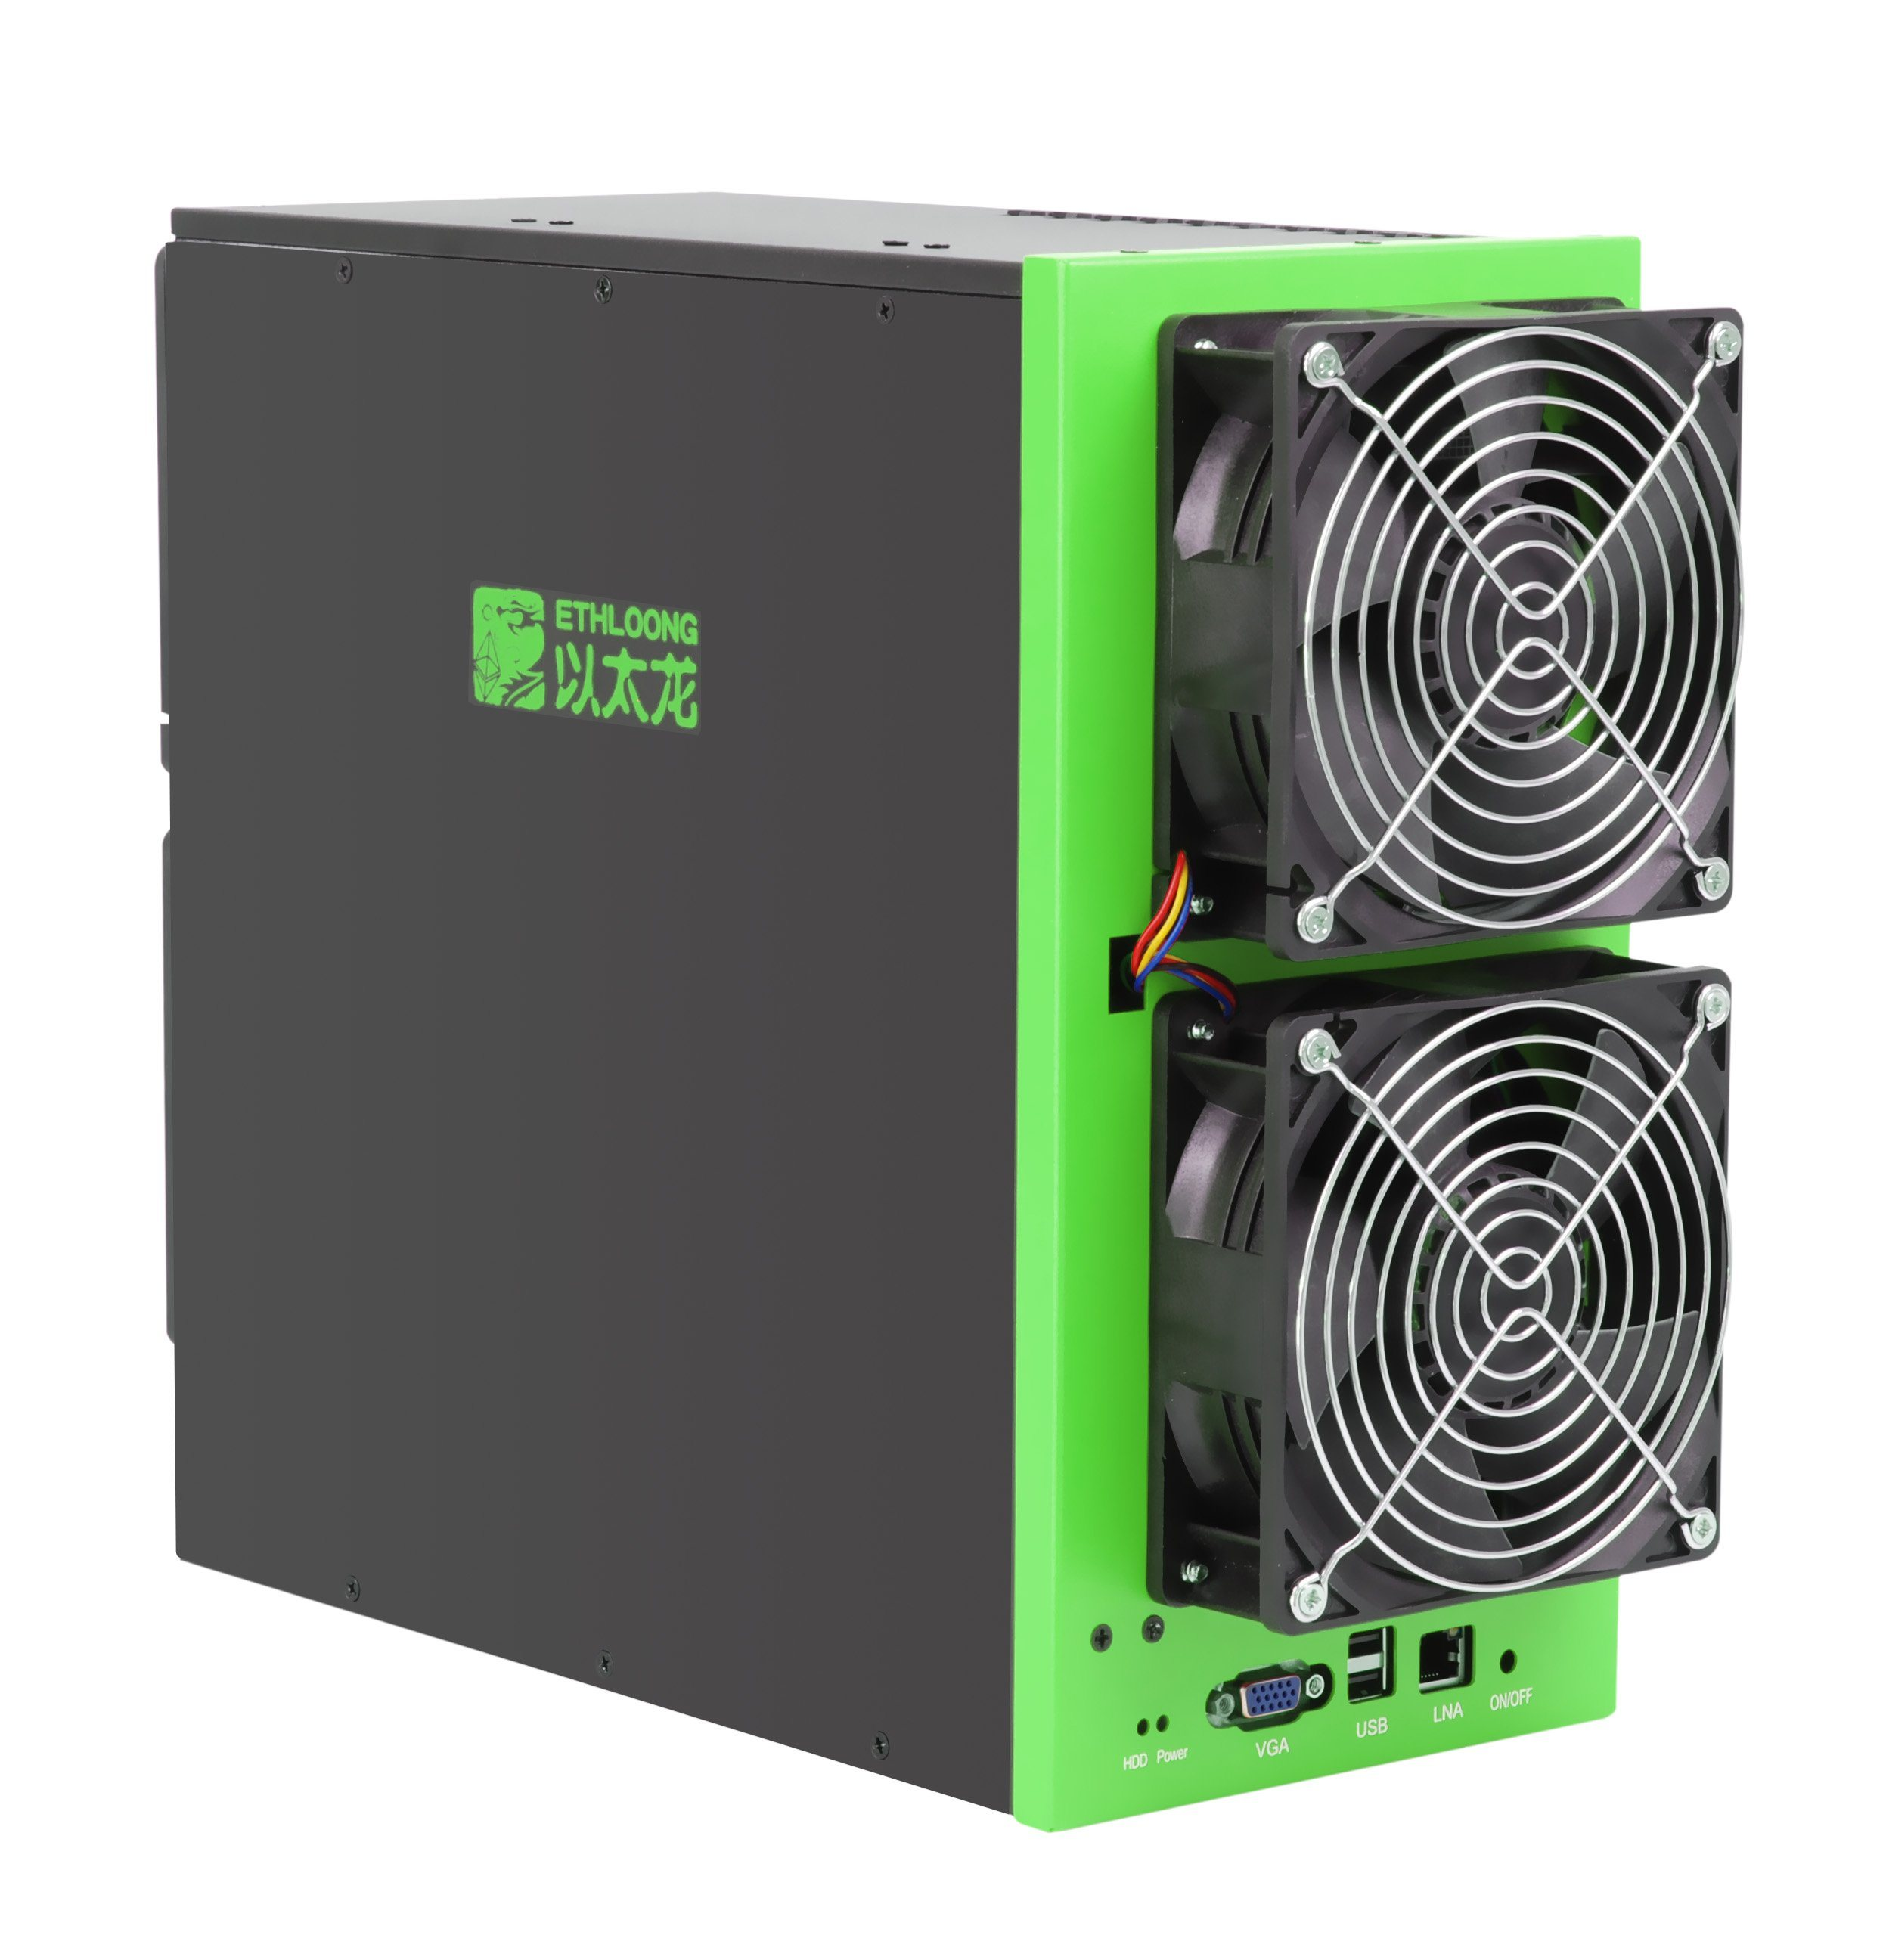 New Eth Miner Ethloong L1 Good Than A10PRO Asic Miner Ethash-Algorithm A10 PRO Antminer